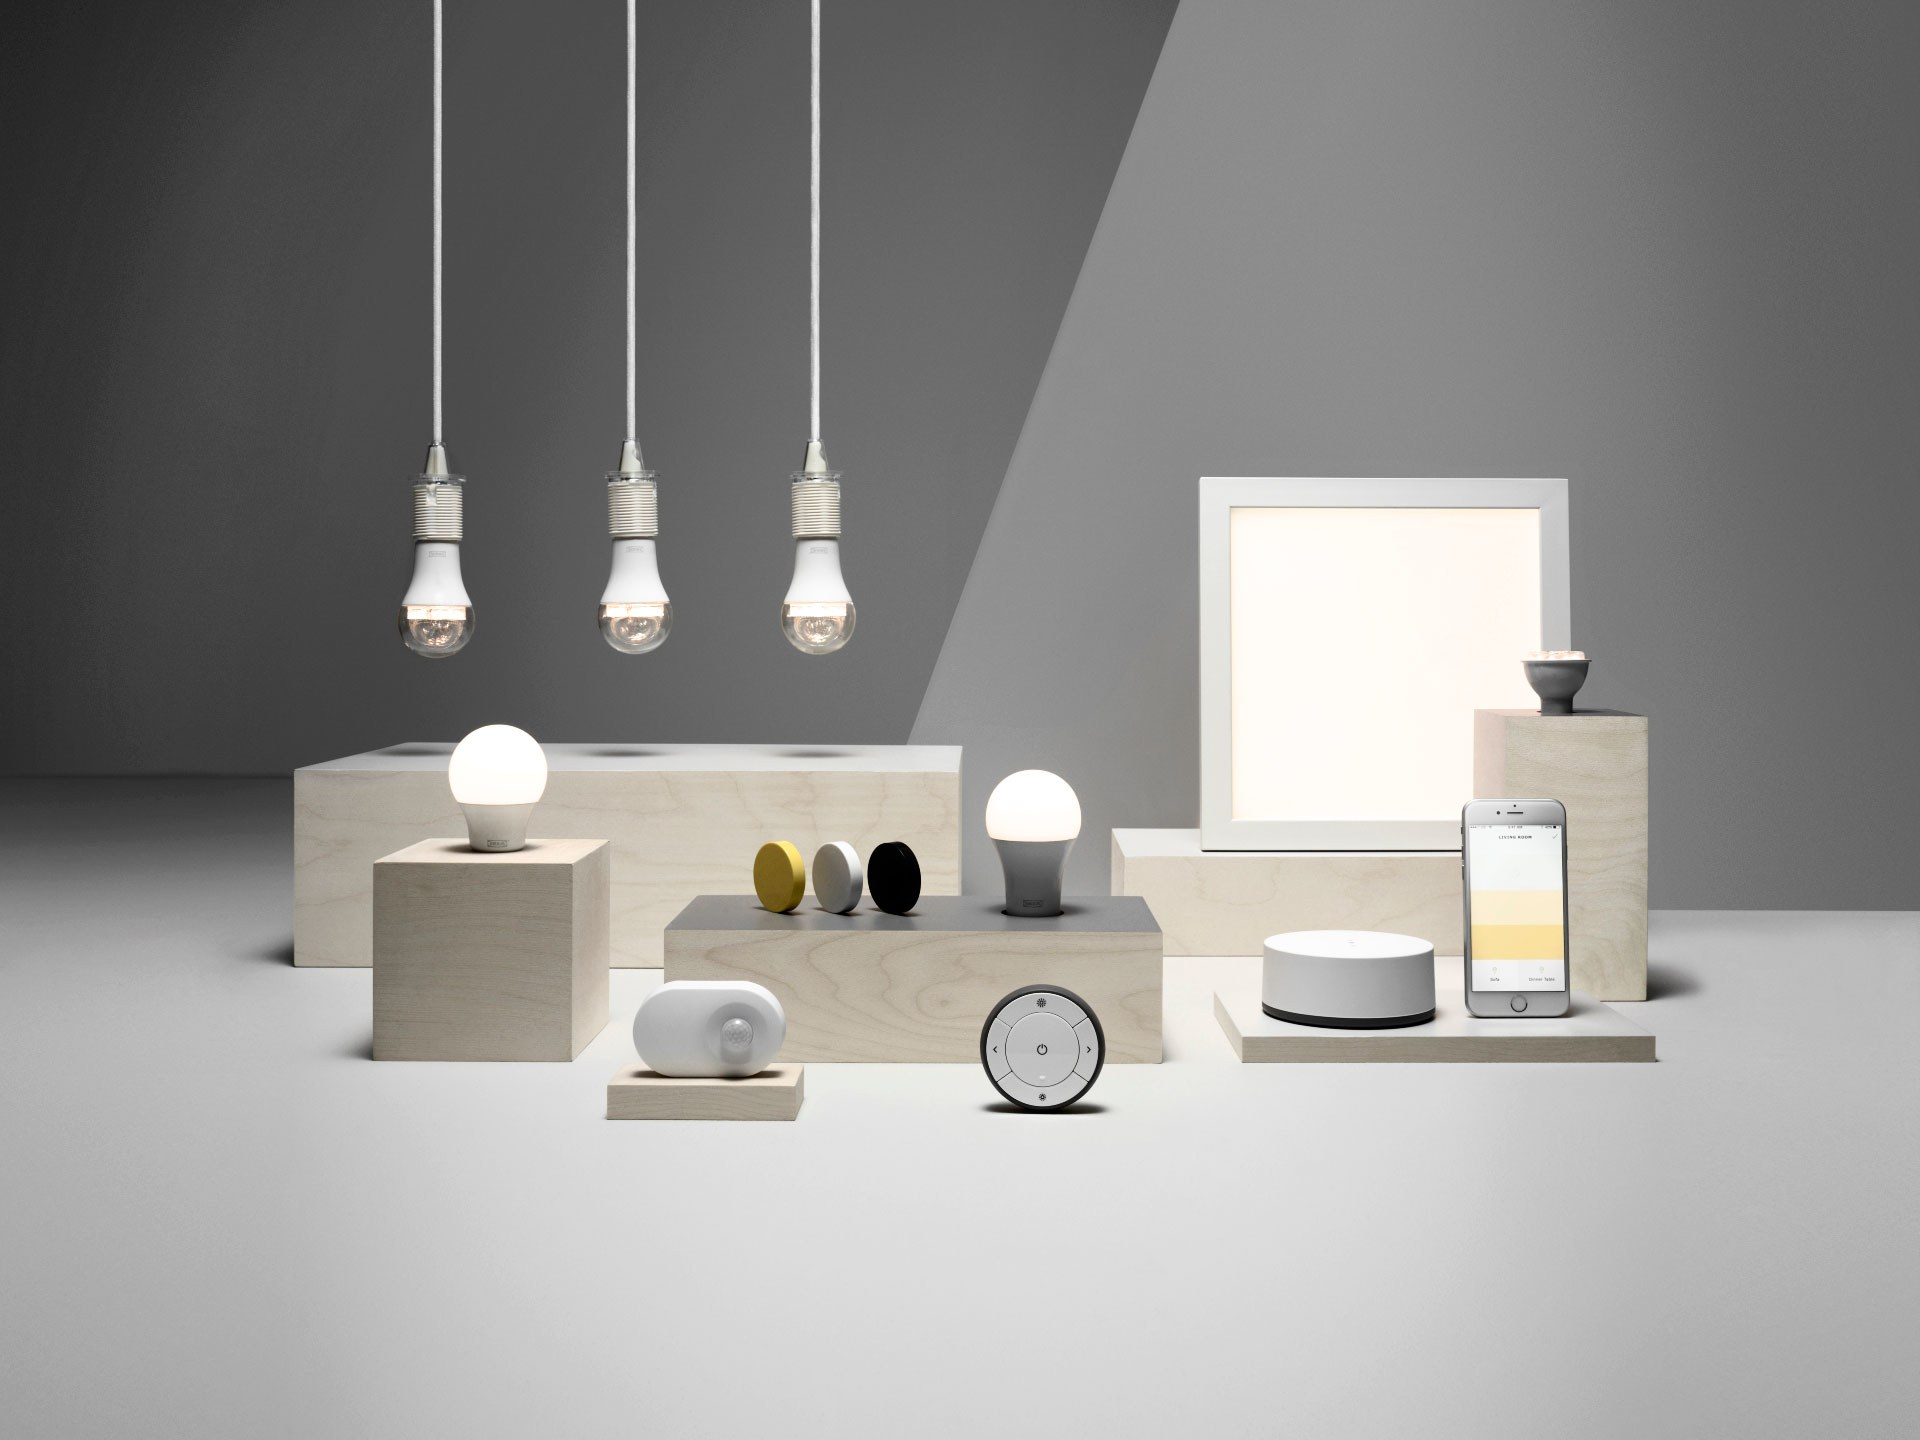 The smart home products from Ikea are good for that